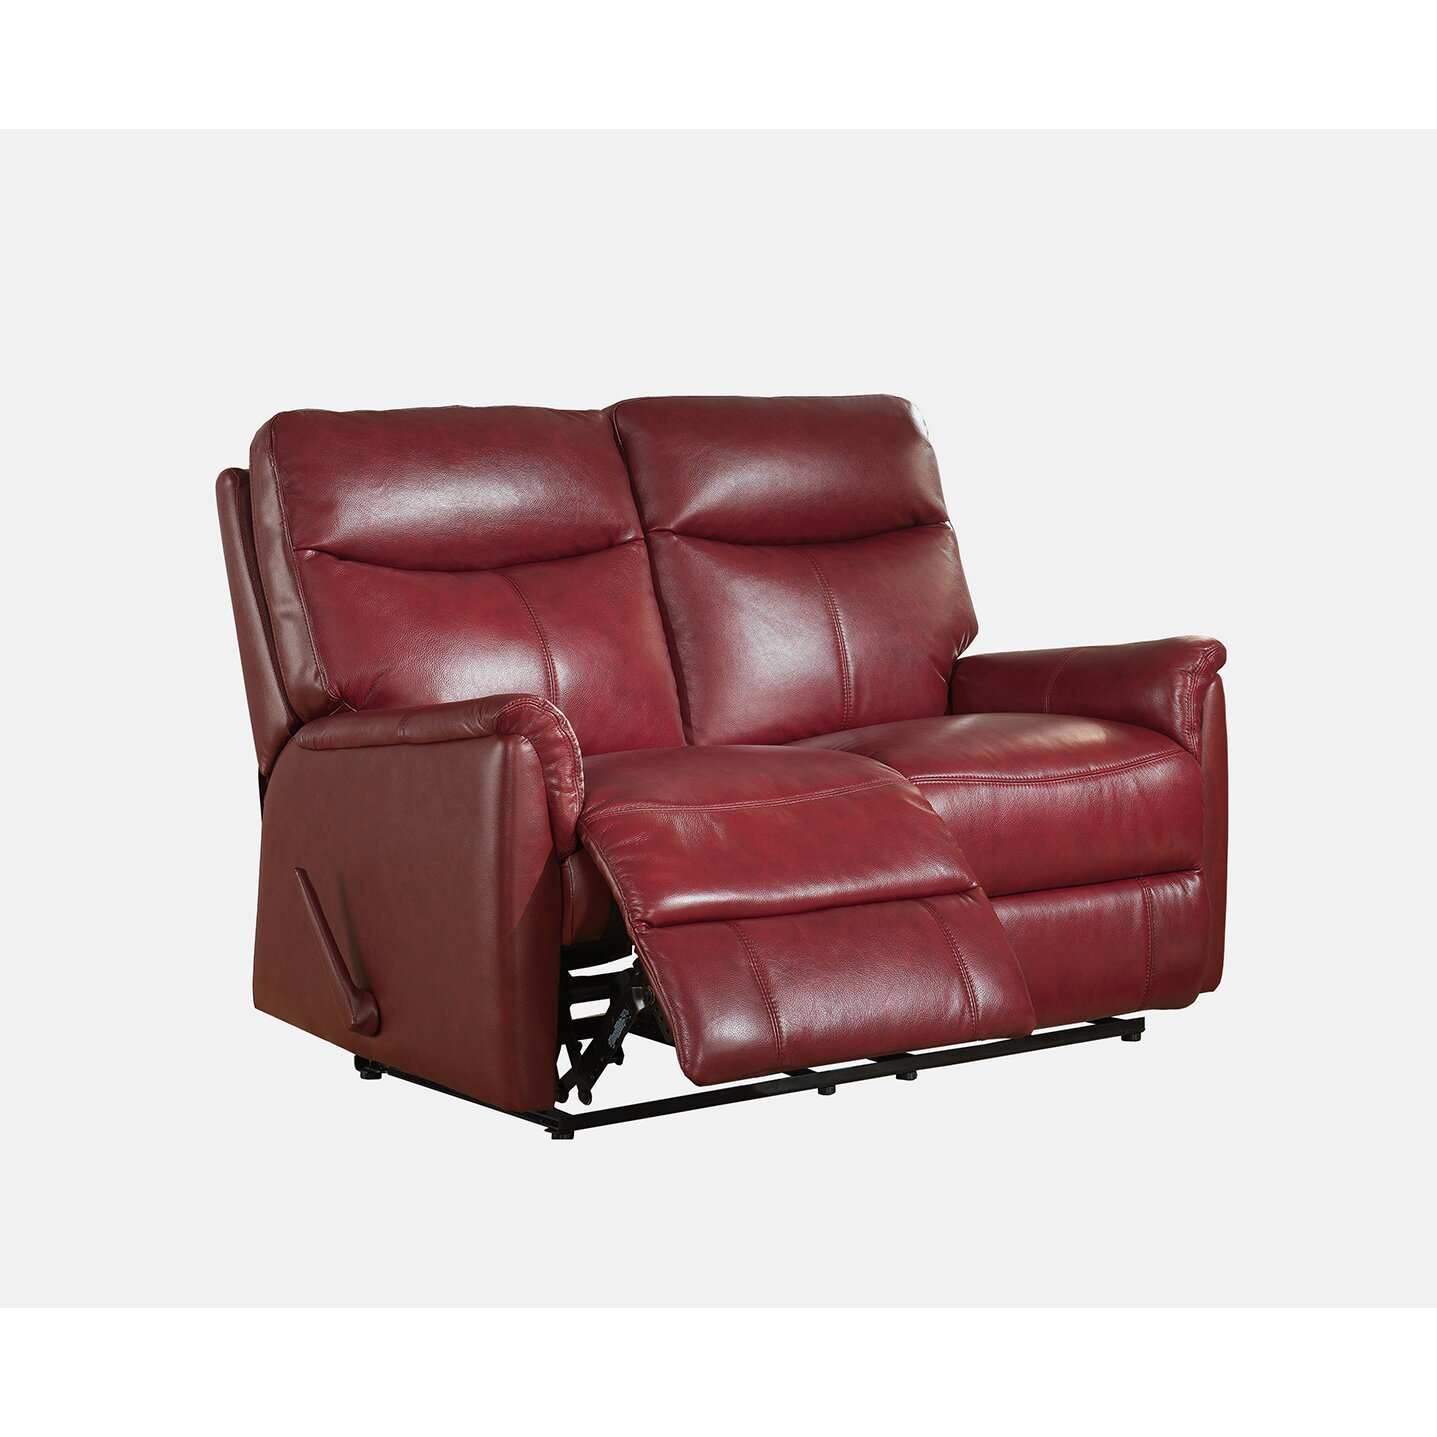 Amax napa top grain leather lay flat reclining sofa and for Couch sofa set